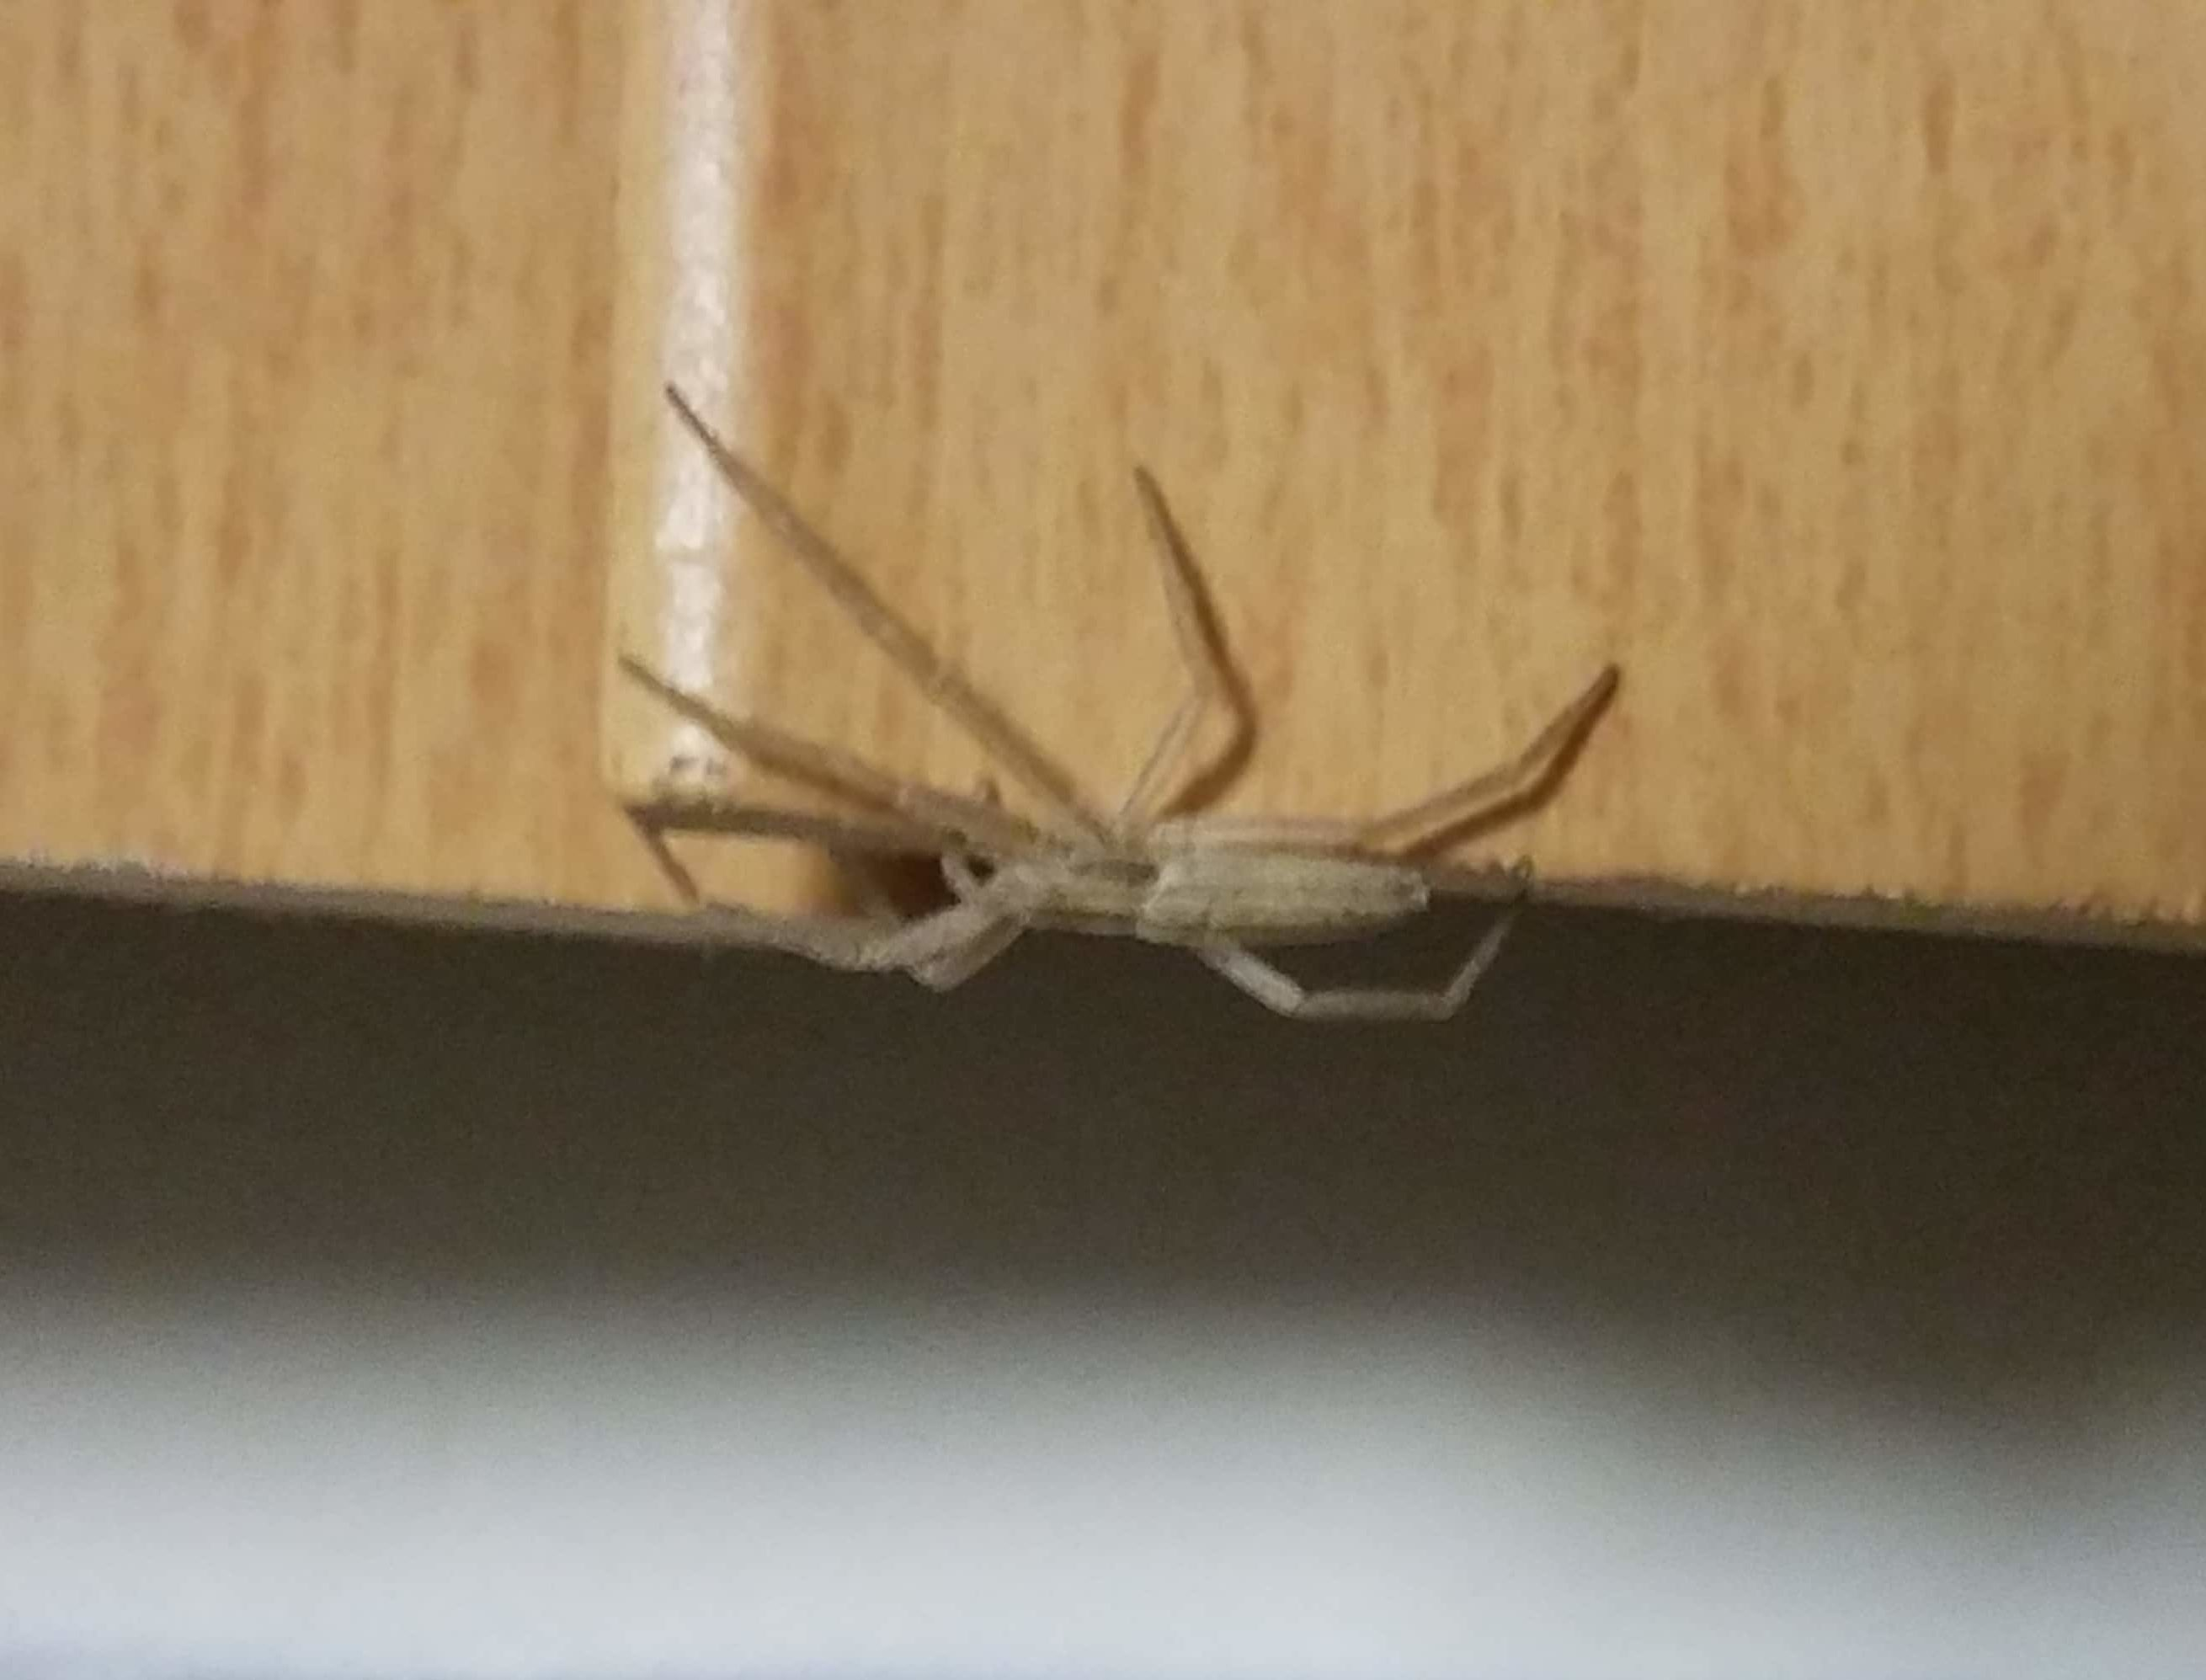 Picture of Tibellus (Slender Crab Spiders) - Lateral